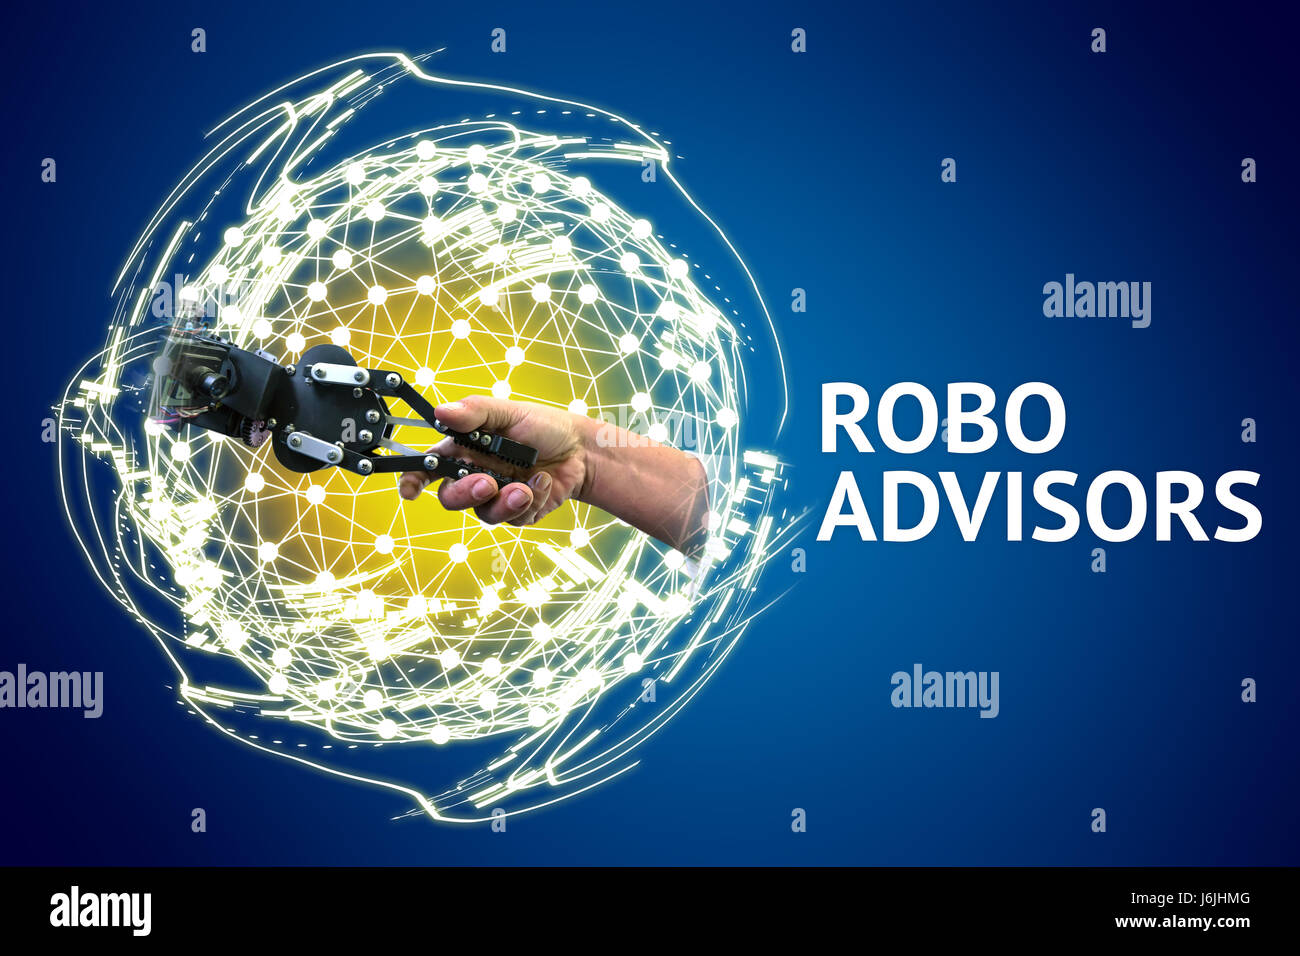 Robo advisors and investing concept , Robot and human holding hands with handshake , world wireframe symbol , text Stock Photo